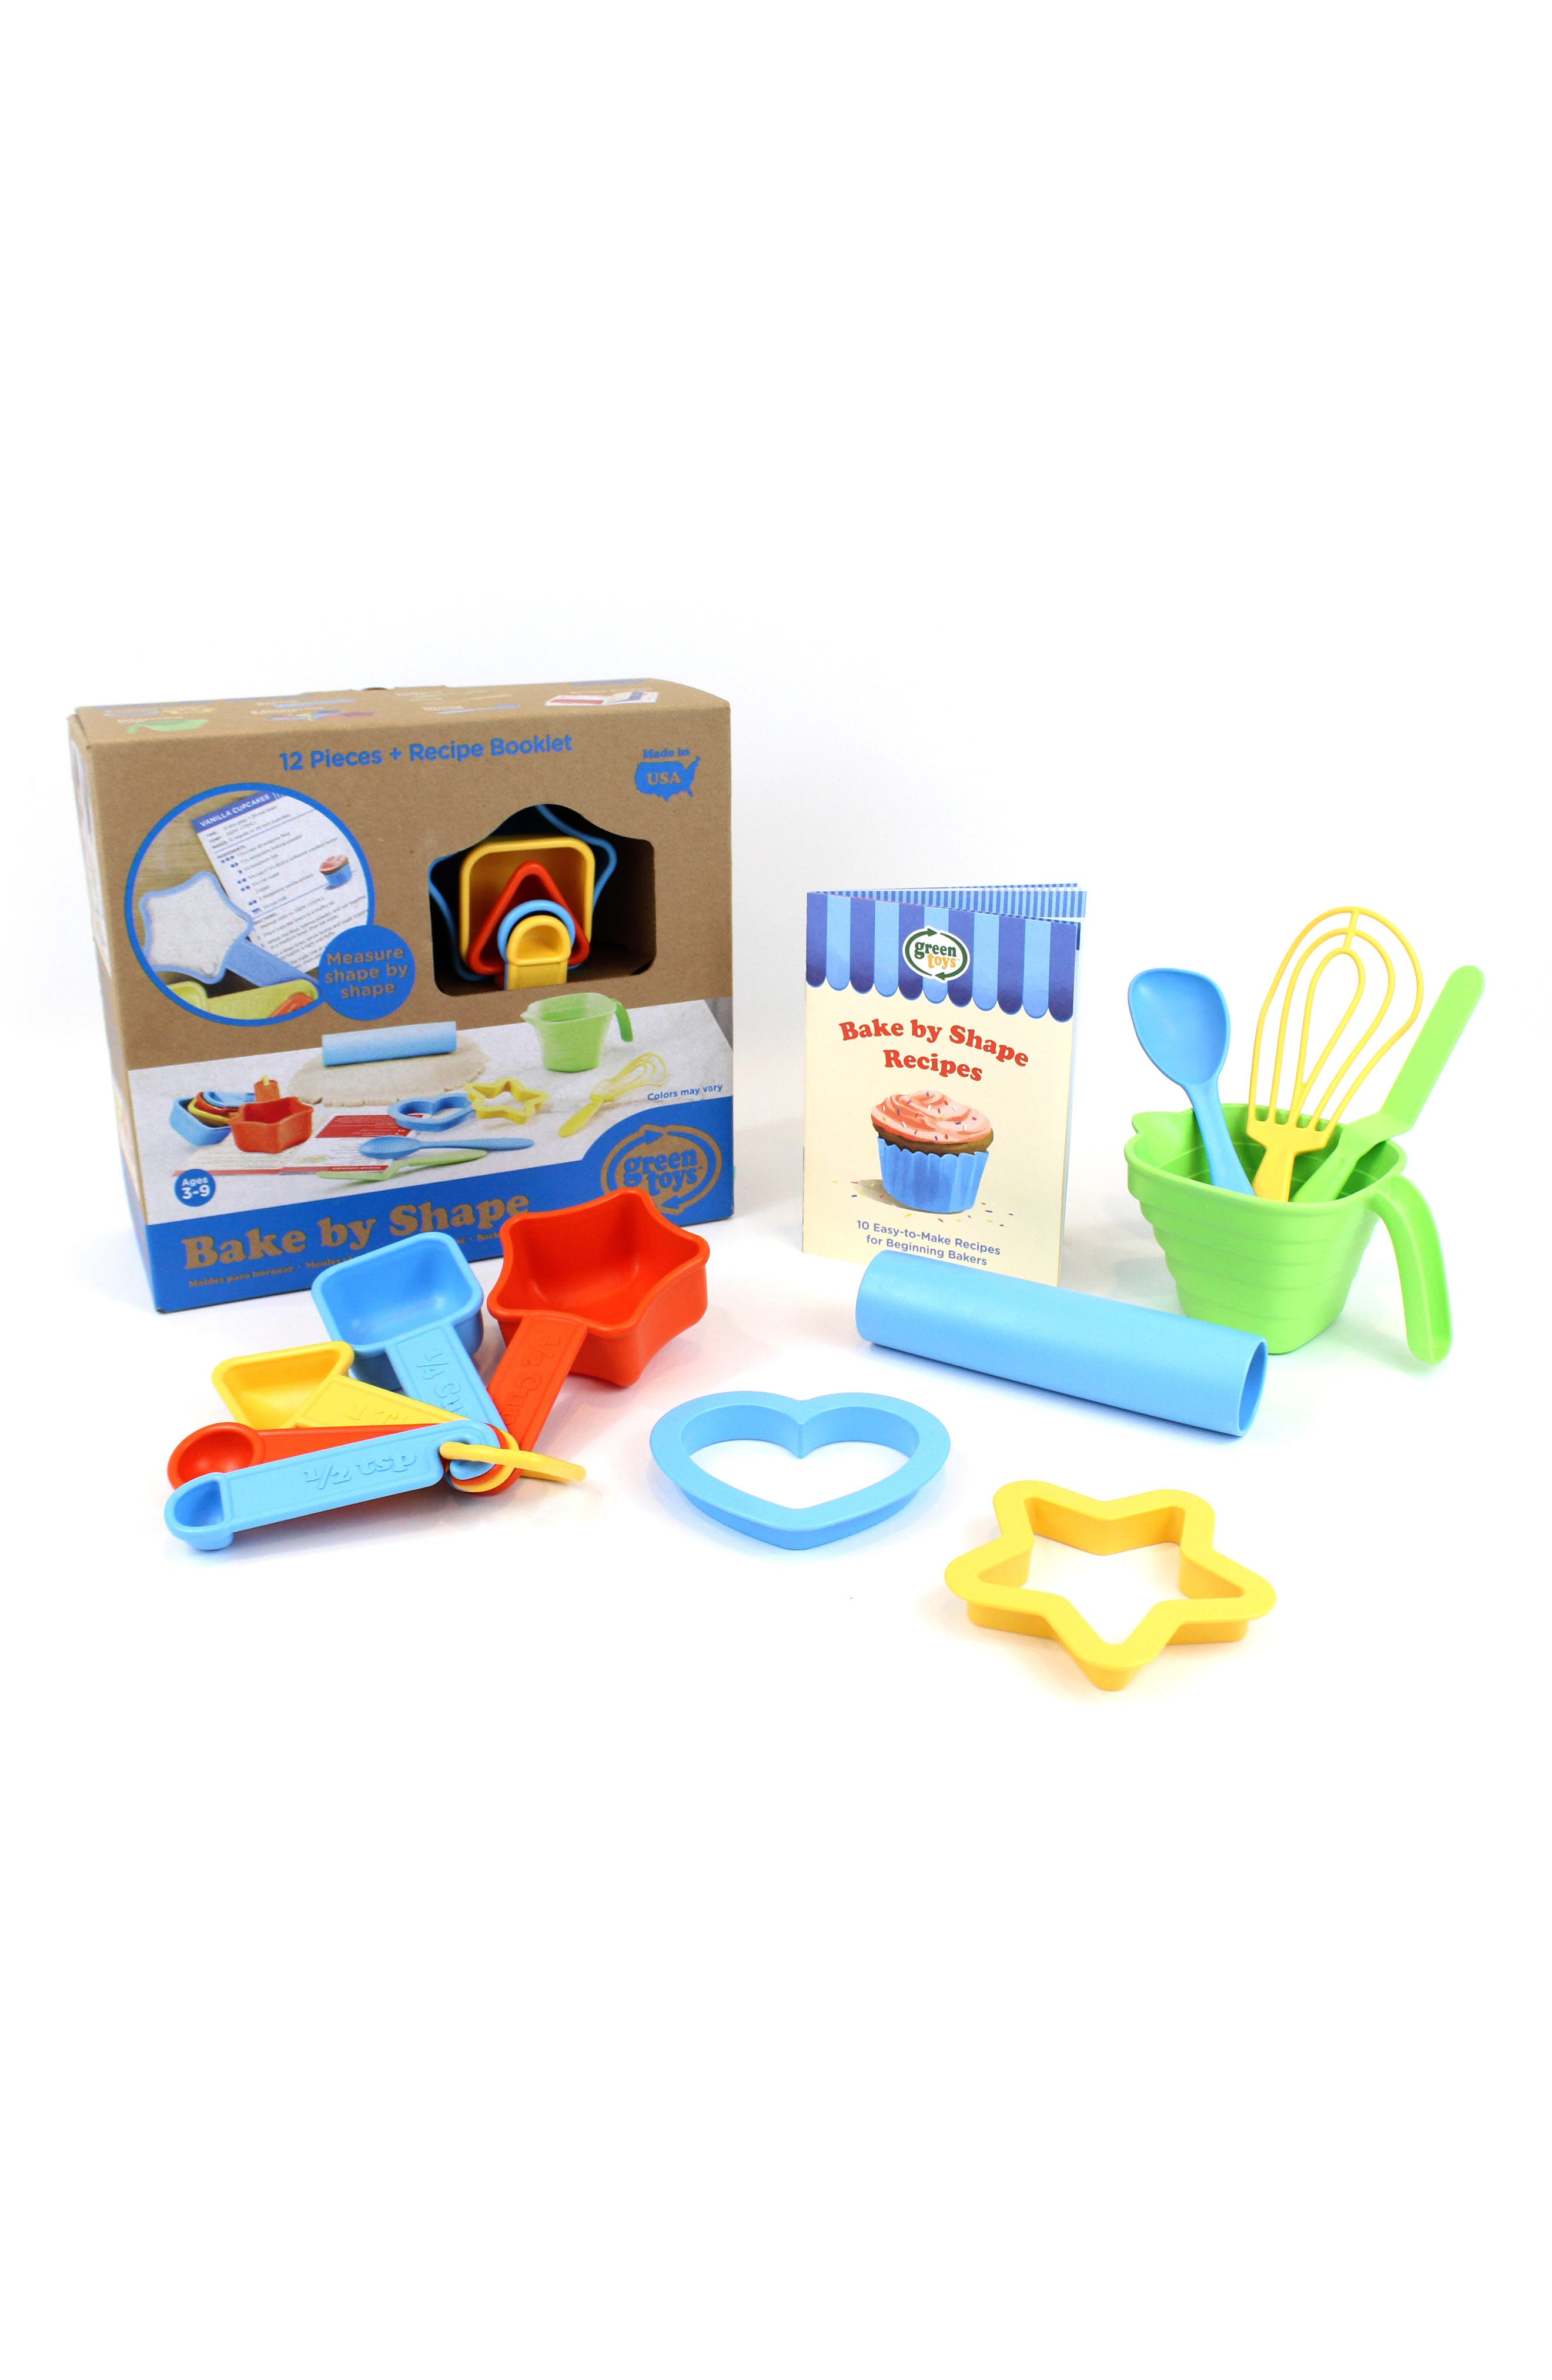 Green Toys 12-Piece Bake by Shape Baking Set